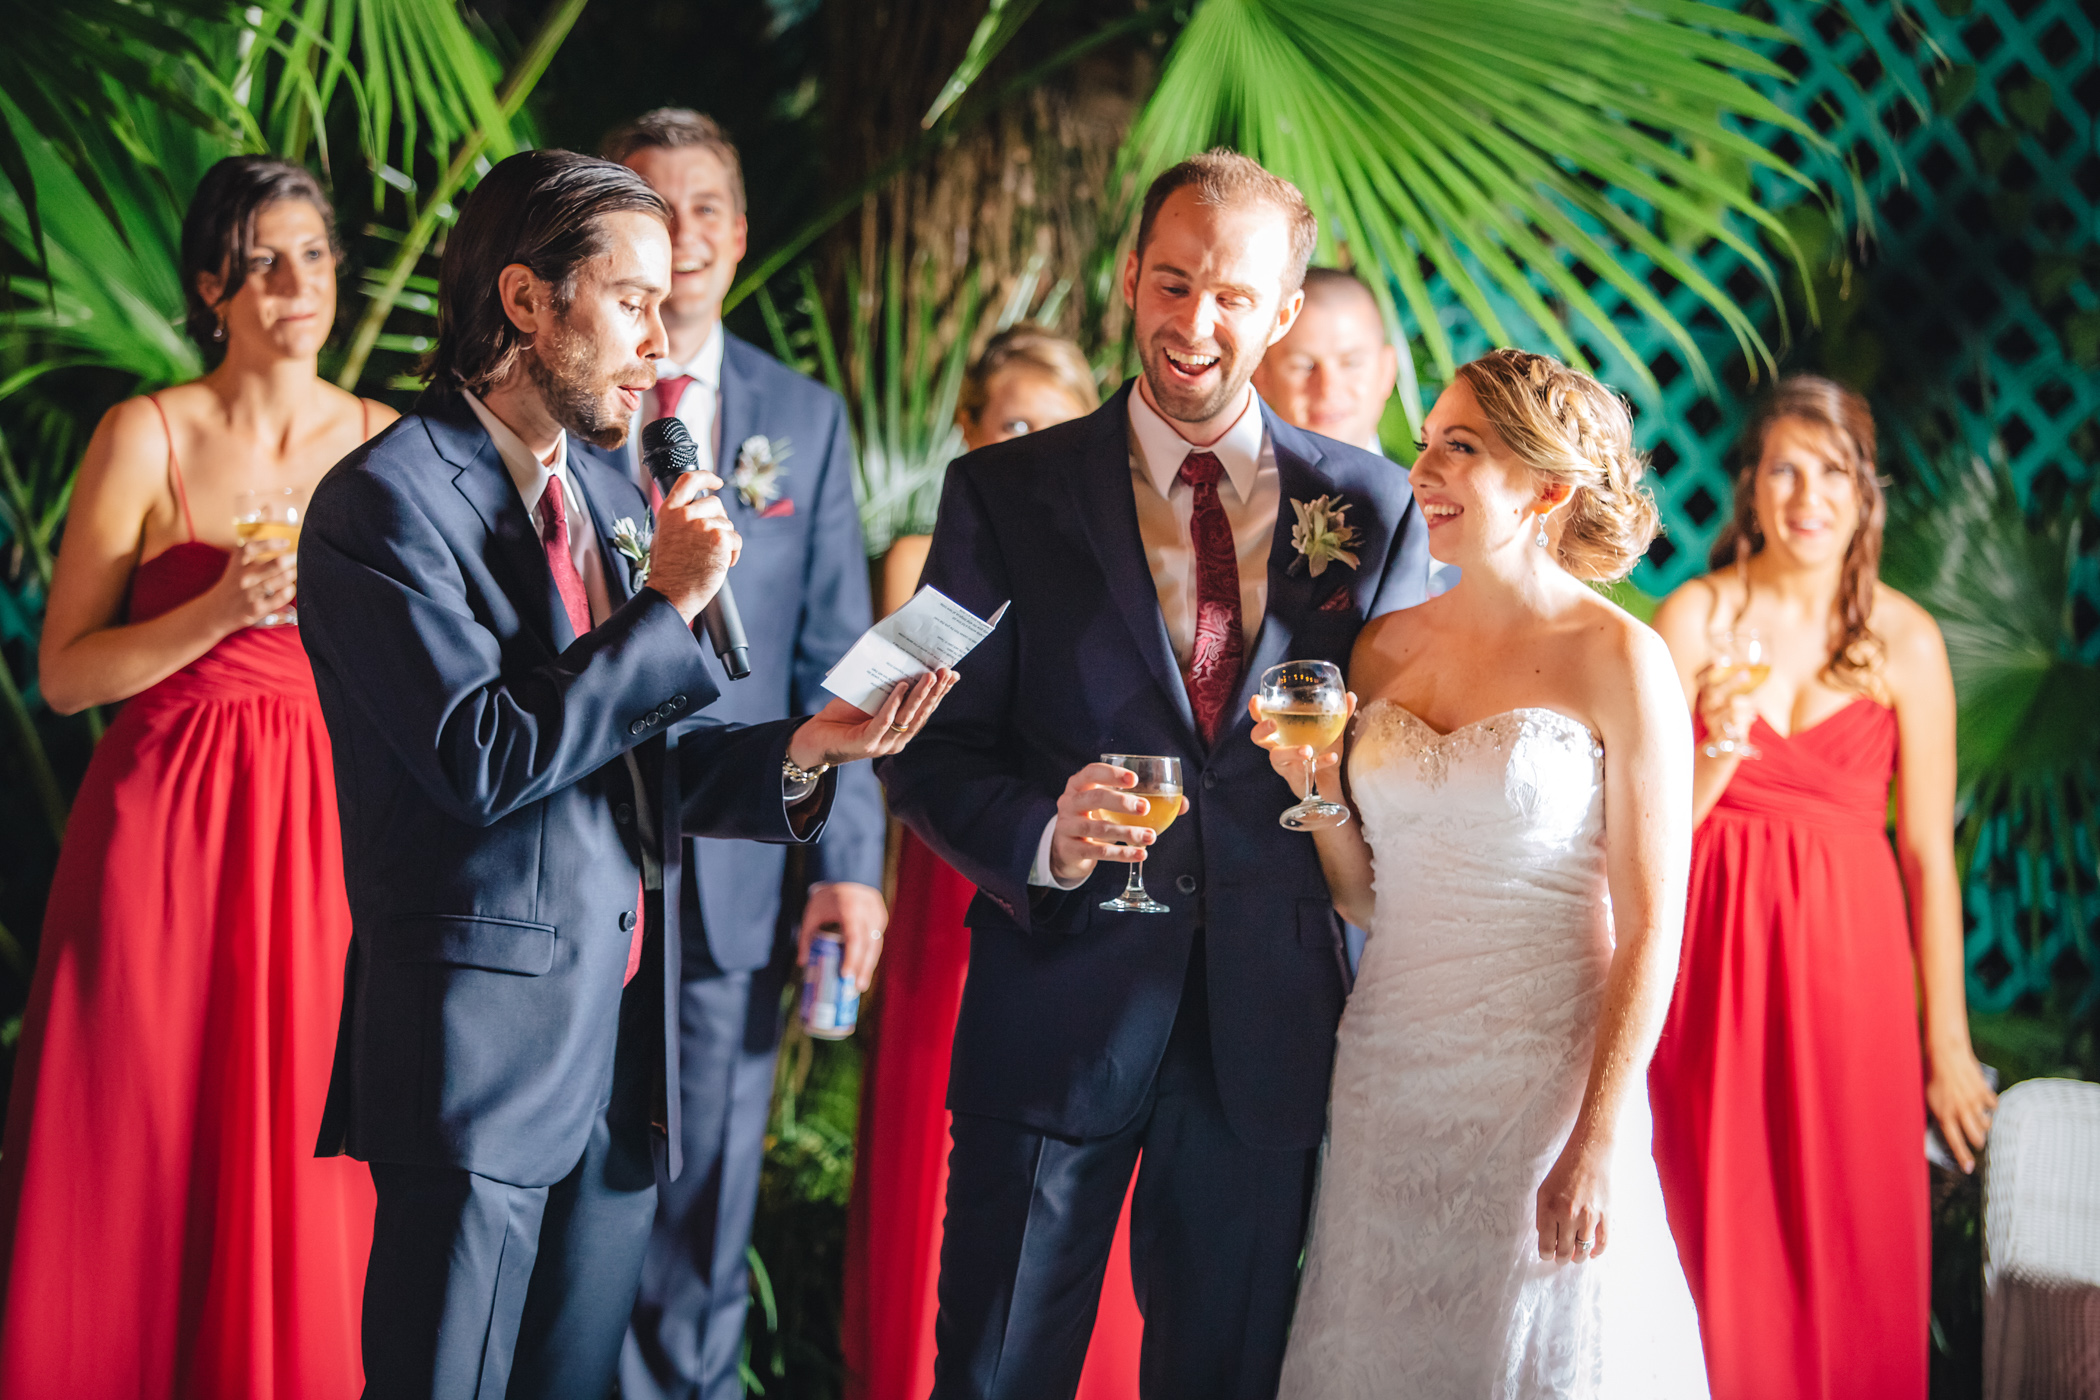 Downtown Orlando Wedding at Lake Lucerne Christmas Theme Red Dress Navy Suits 148.jpg